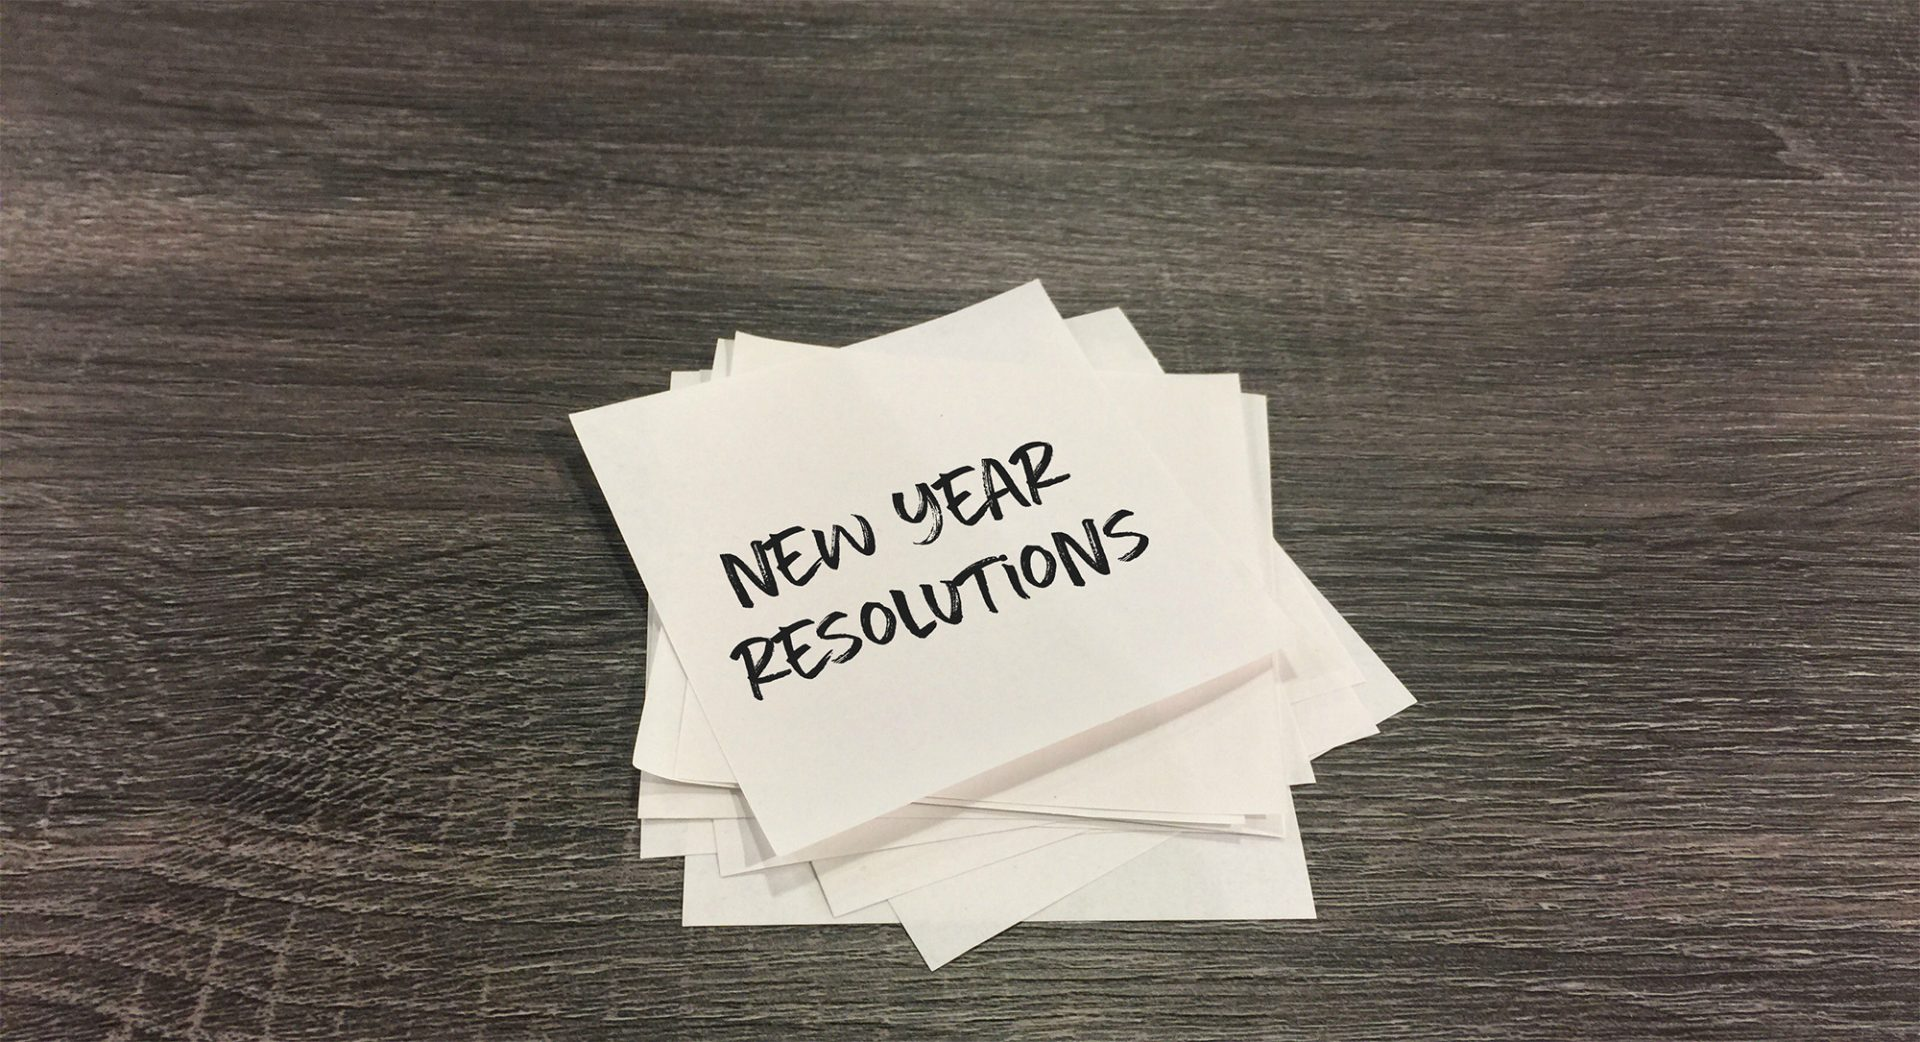 Why New Year Resolutions are Destined to Fail